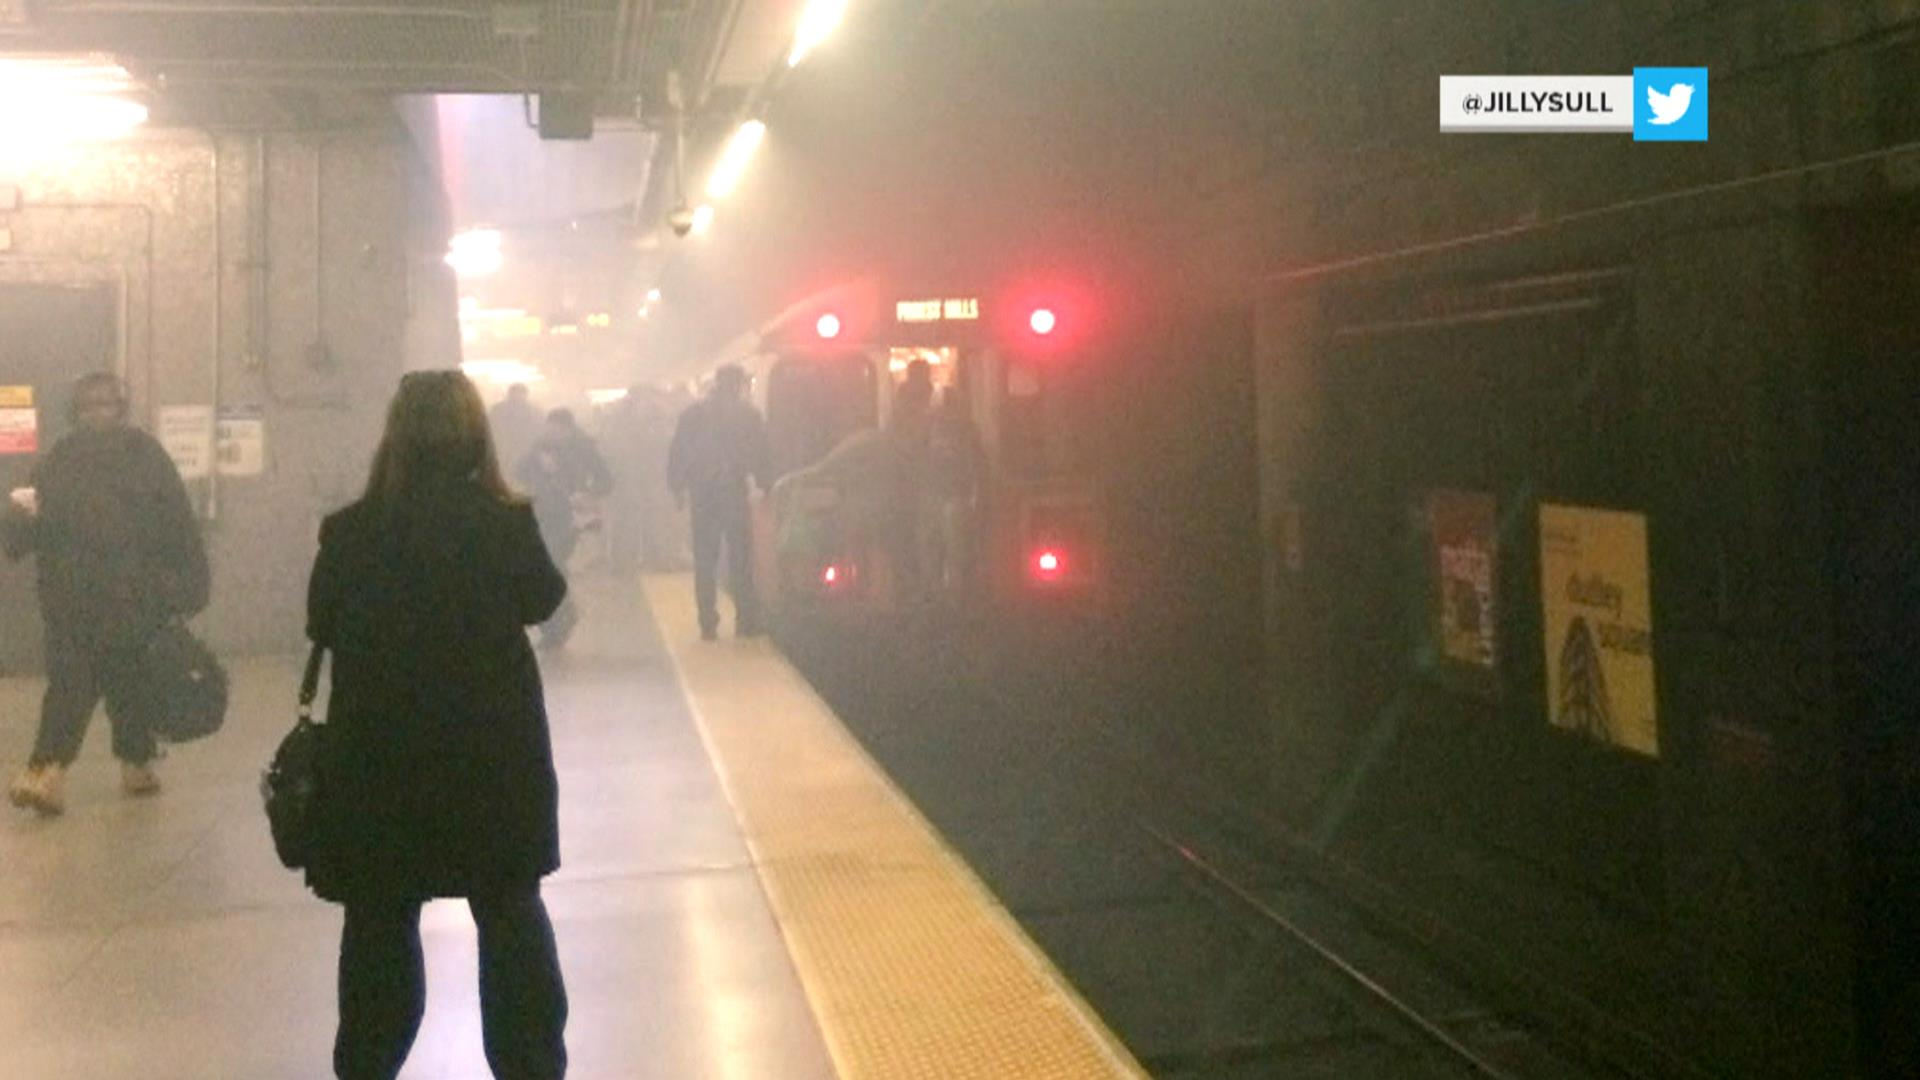 Boston subway train fills with smoke; commuter describes smashing window to escape